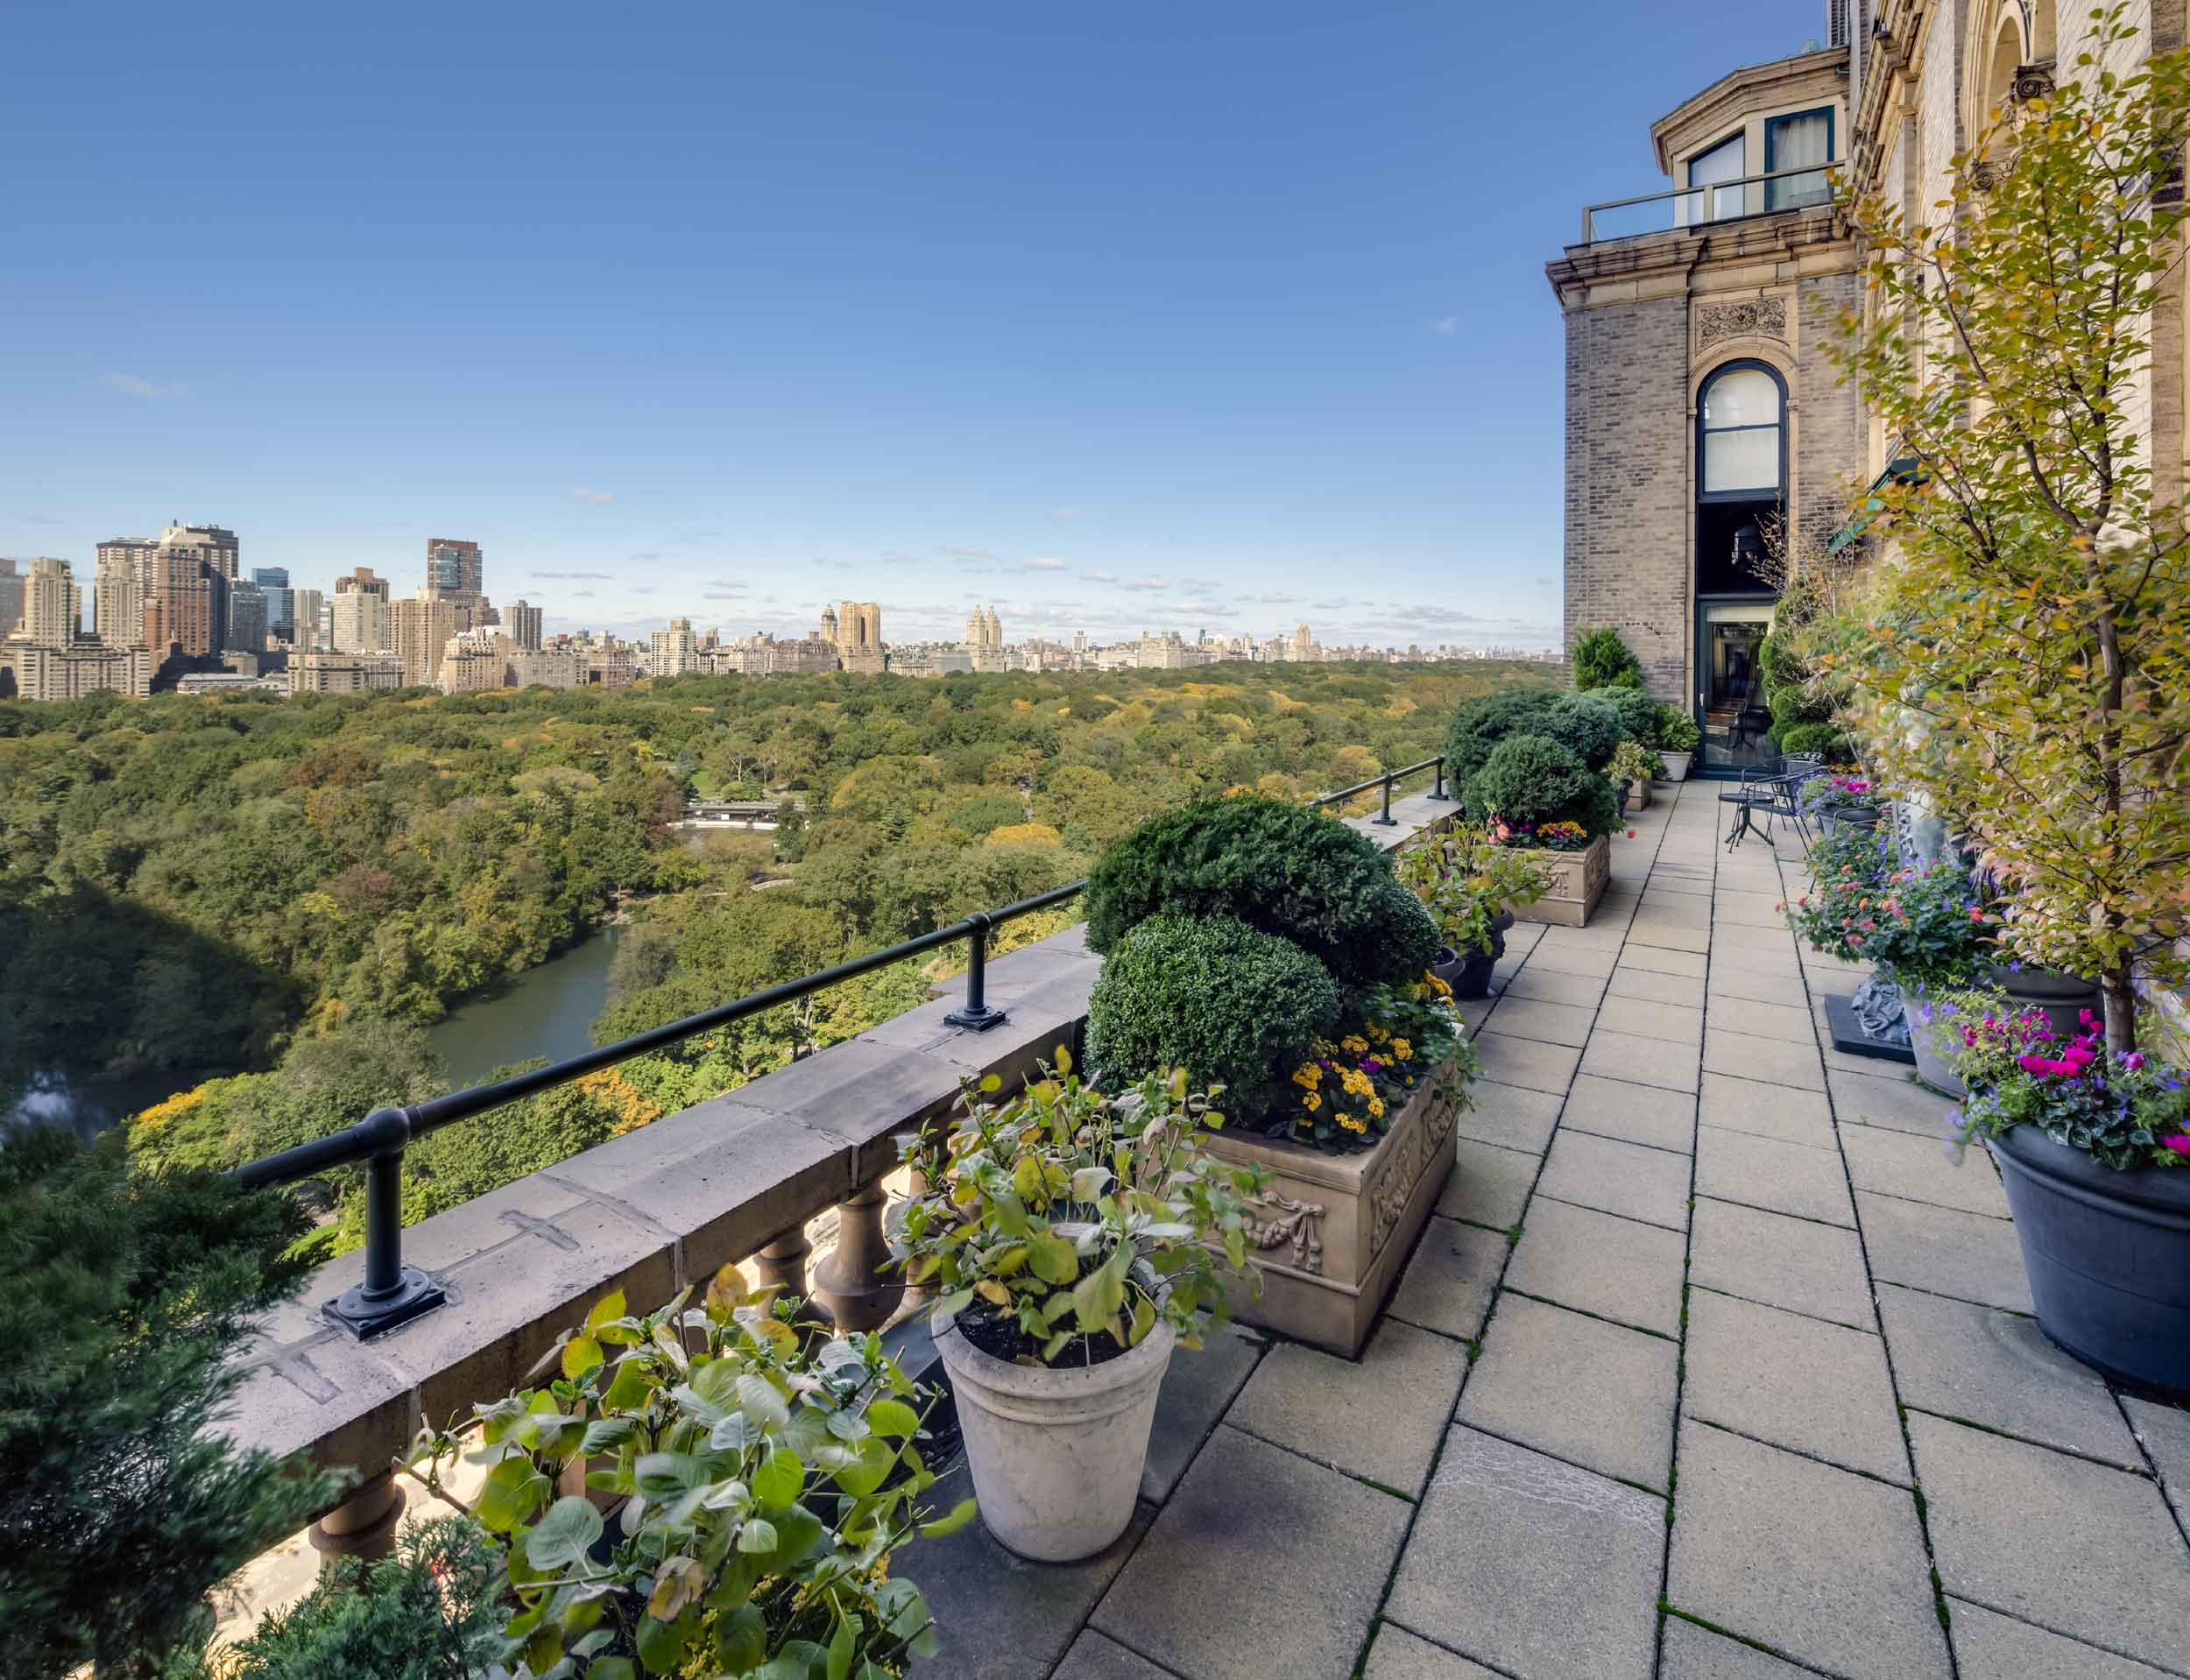 Situated on the 18th floor of the legendary Sherry-Netherland on Fifth Avenue, this full-floor, 15-room residence offers an unrivaled luxury lifestyle experience in the heart of Midtown Manhattan. The residence boasts panoramic views of the city skyline and is located directly opposite Central Park—home to the famous six-mile running and bike loop.